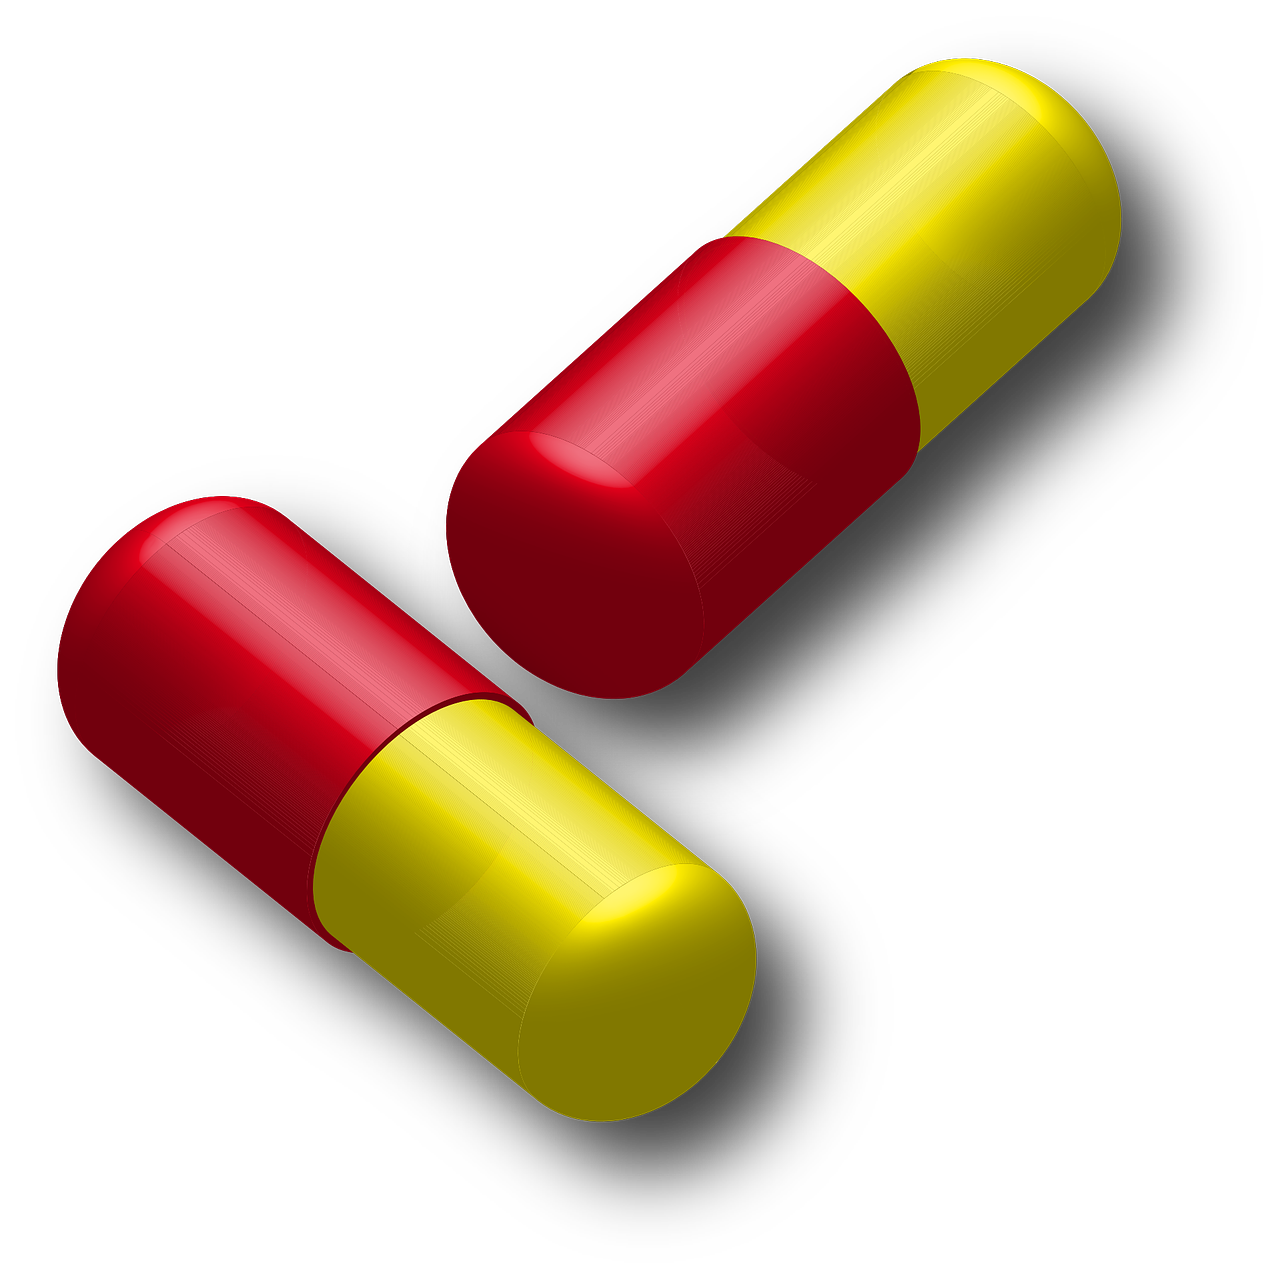 Red and yellow drug capsules